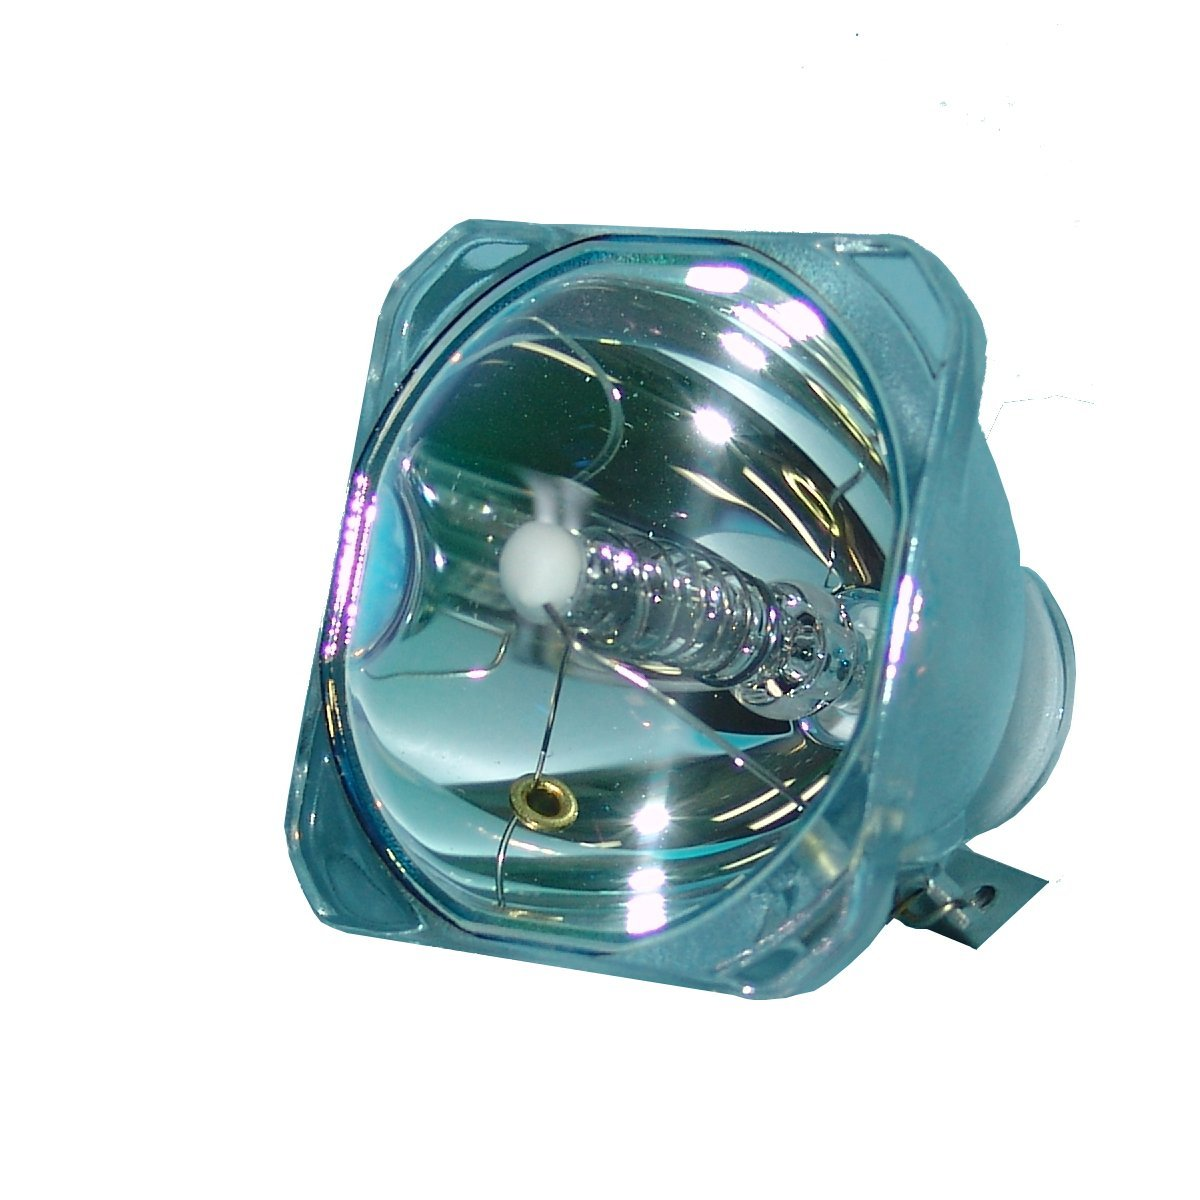 Compatible Bare Bulb TLPLW3 TLP-LW3 for TOSHIBA TDP-T80 TDP-T91 TDP-T98 TDP-TW90 TDP-T90 TDP-SW80U Projector Lamp Without Case compatible bare bulb tlplw5 tlp lw5 for toshiba tdp s80 tdp s81 tdp sw80 projector lamp bulb without housing free shipping